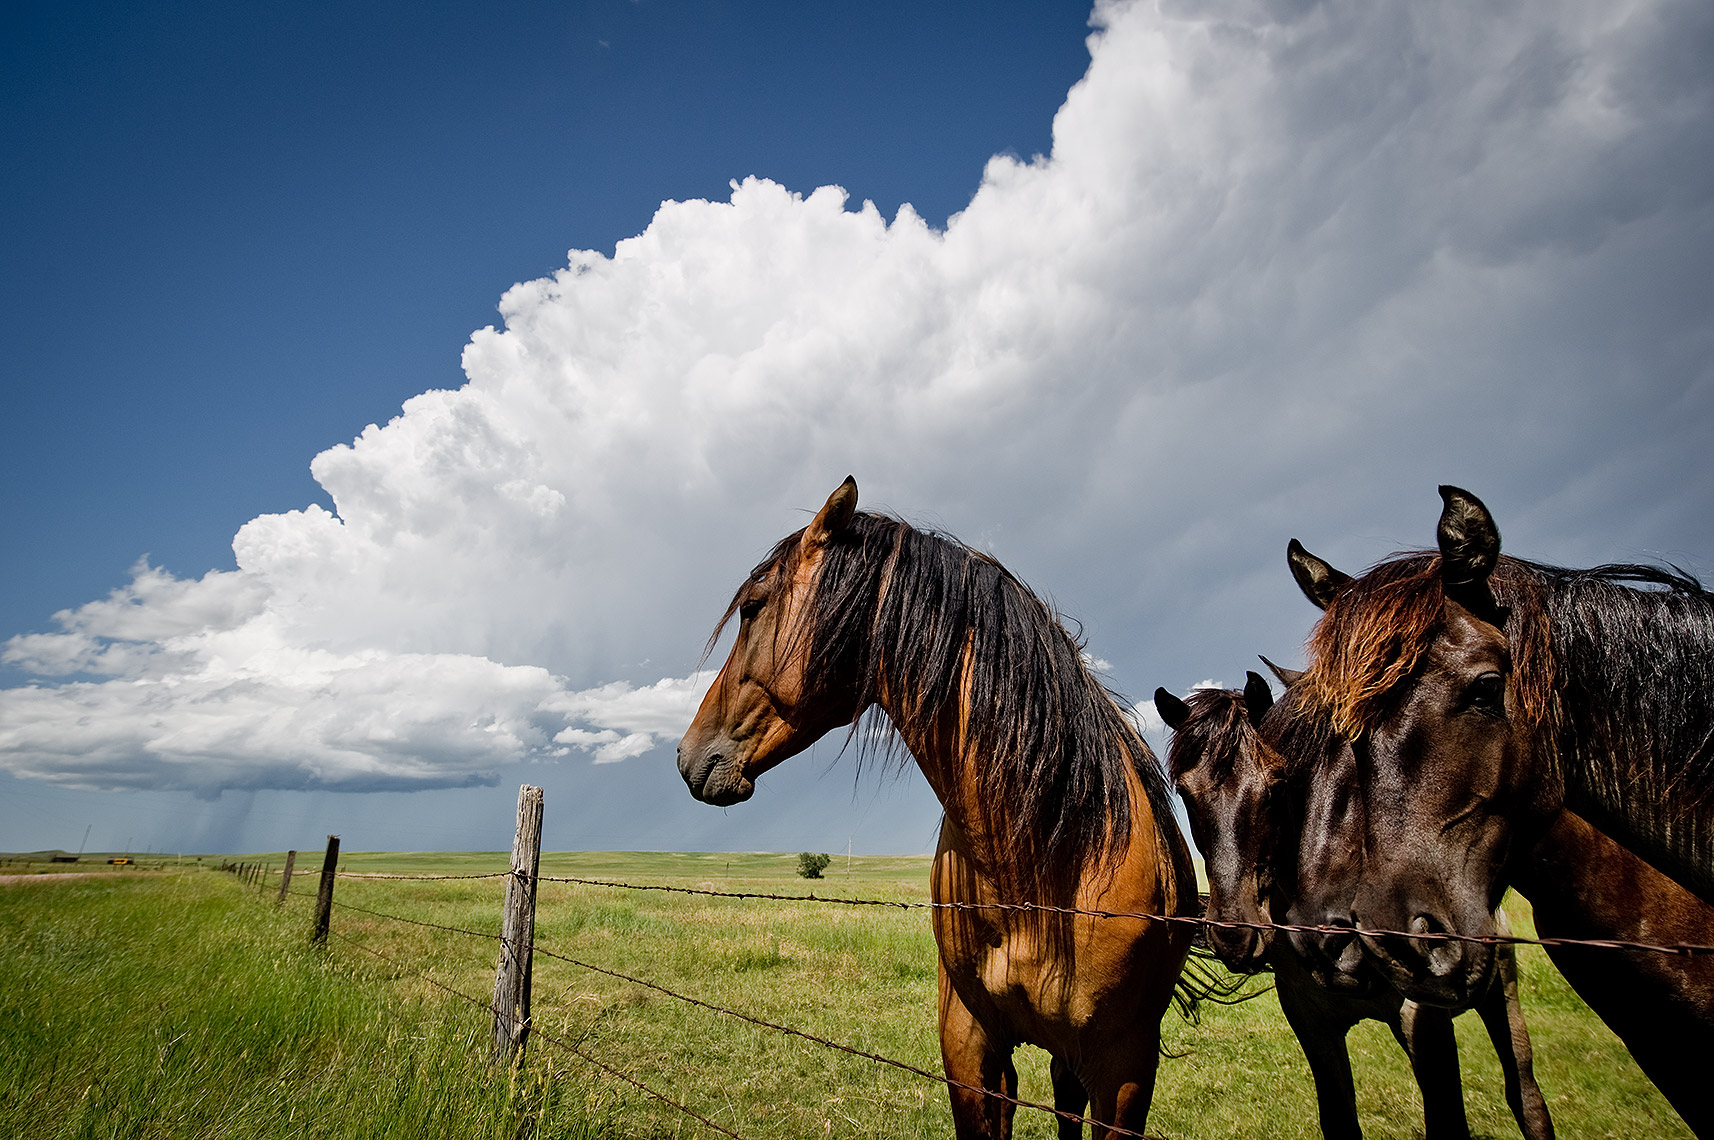 Horses and Thunderstorm